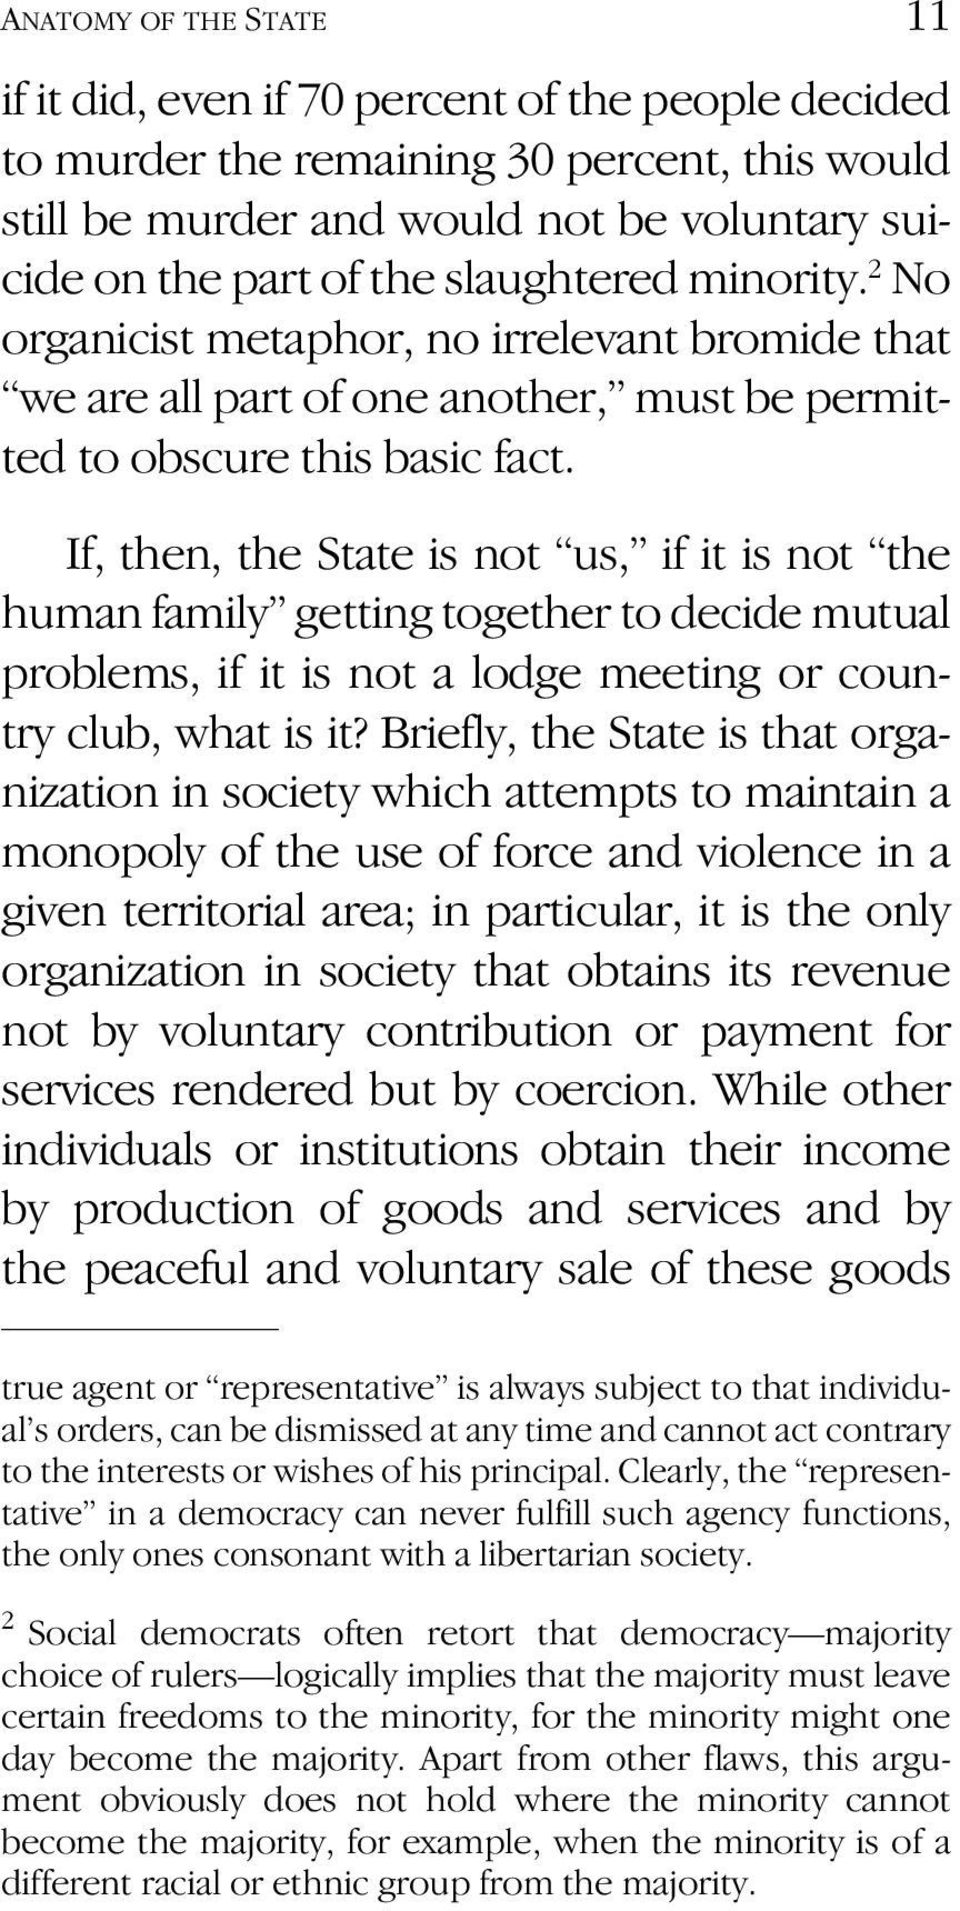 If, then, the State is not us, if it is not the human family getting together to decide mutual problems, if it is not a lodge meeting or country club, what is it?